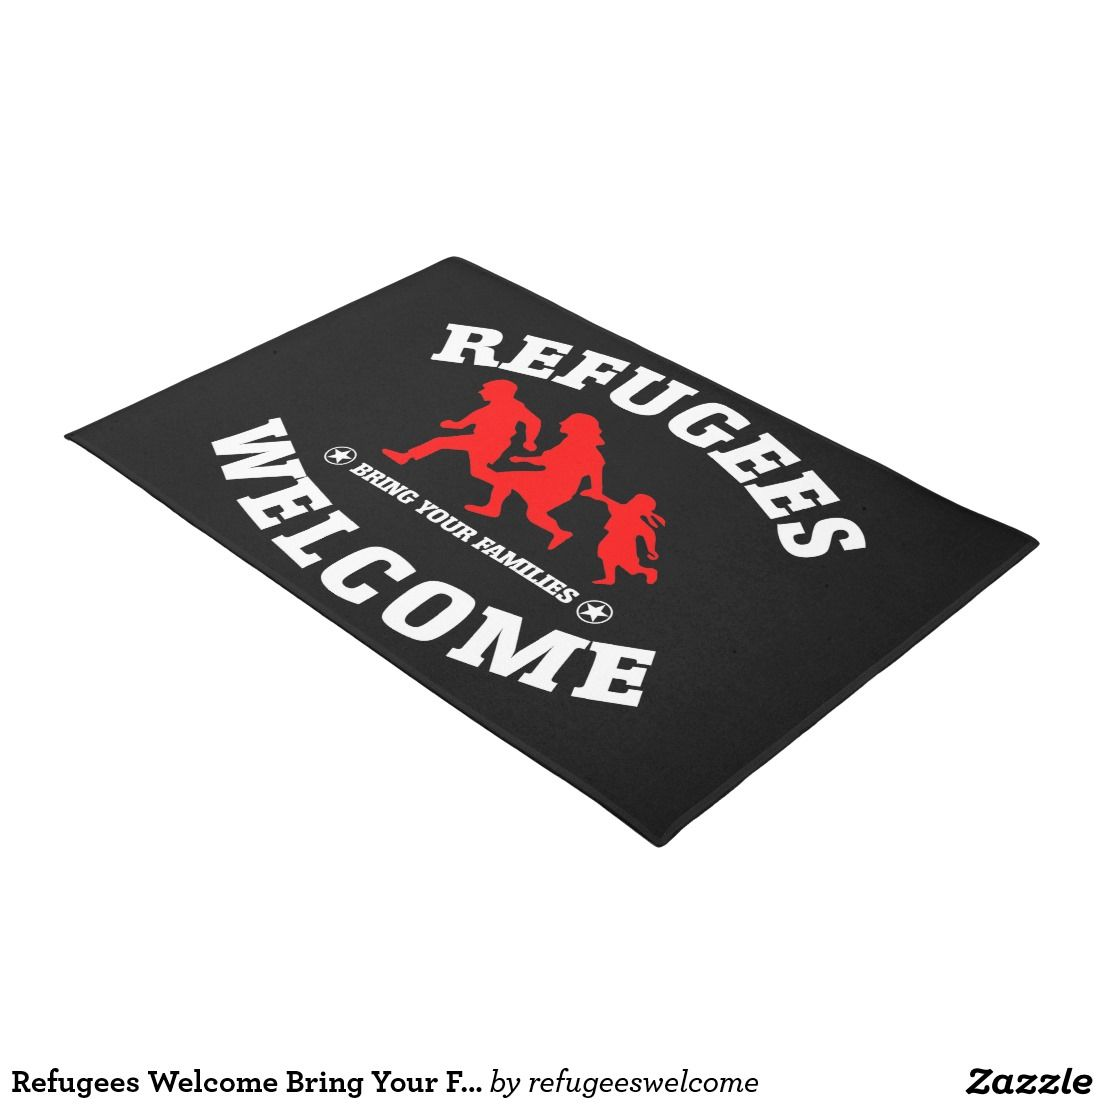 Refugees Welcome Bring Your Families Doormat #refugees #refugeeswelcome #refugeecrisis